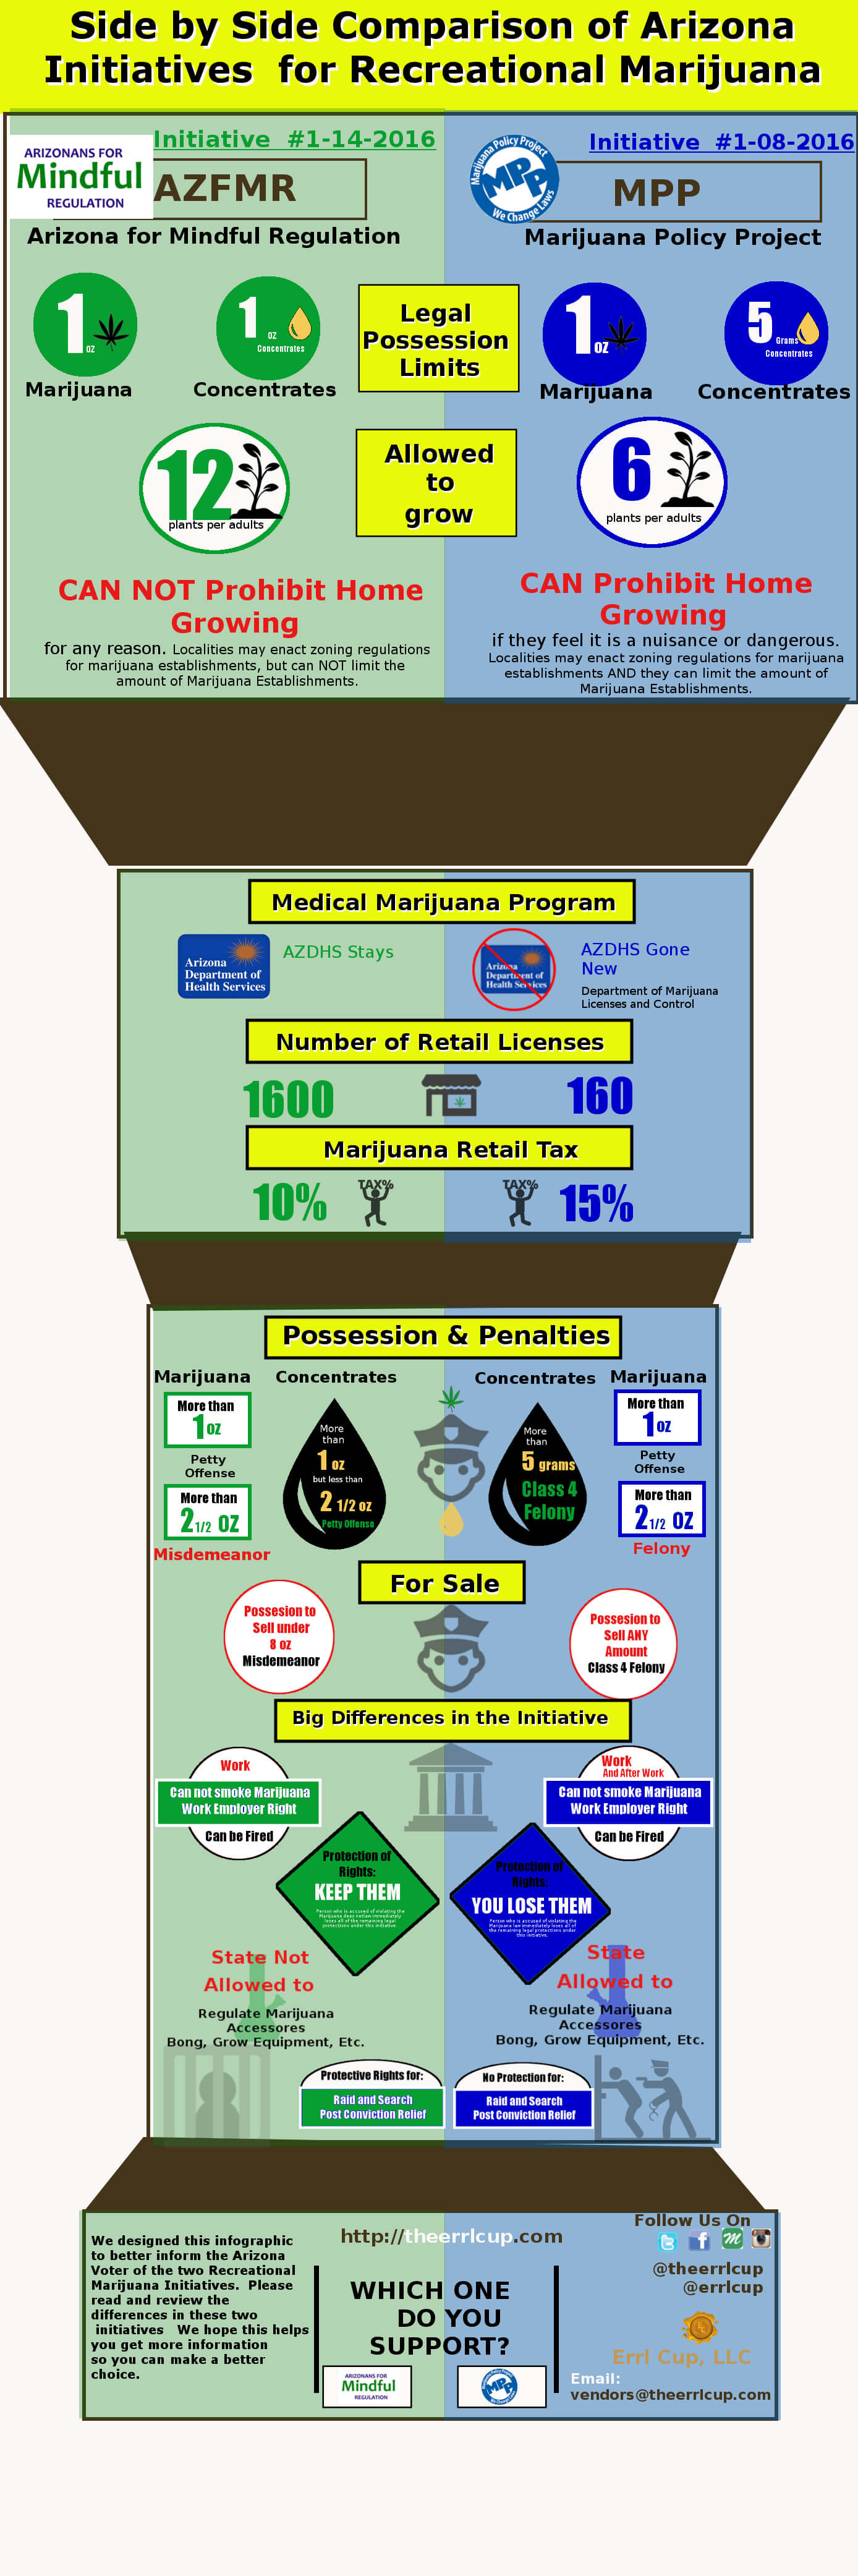 compare azfmr and mpp marijuana